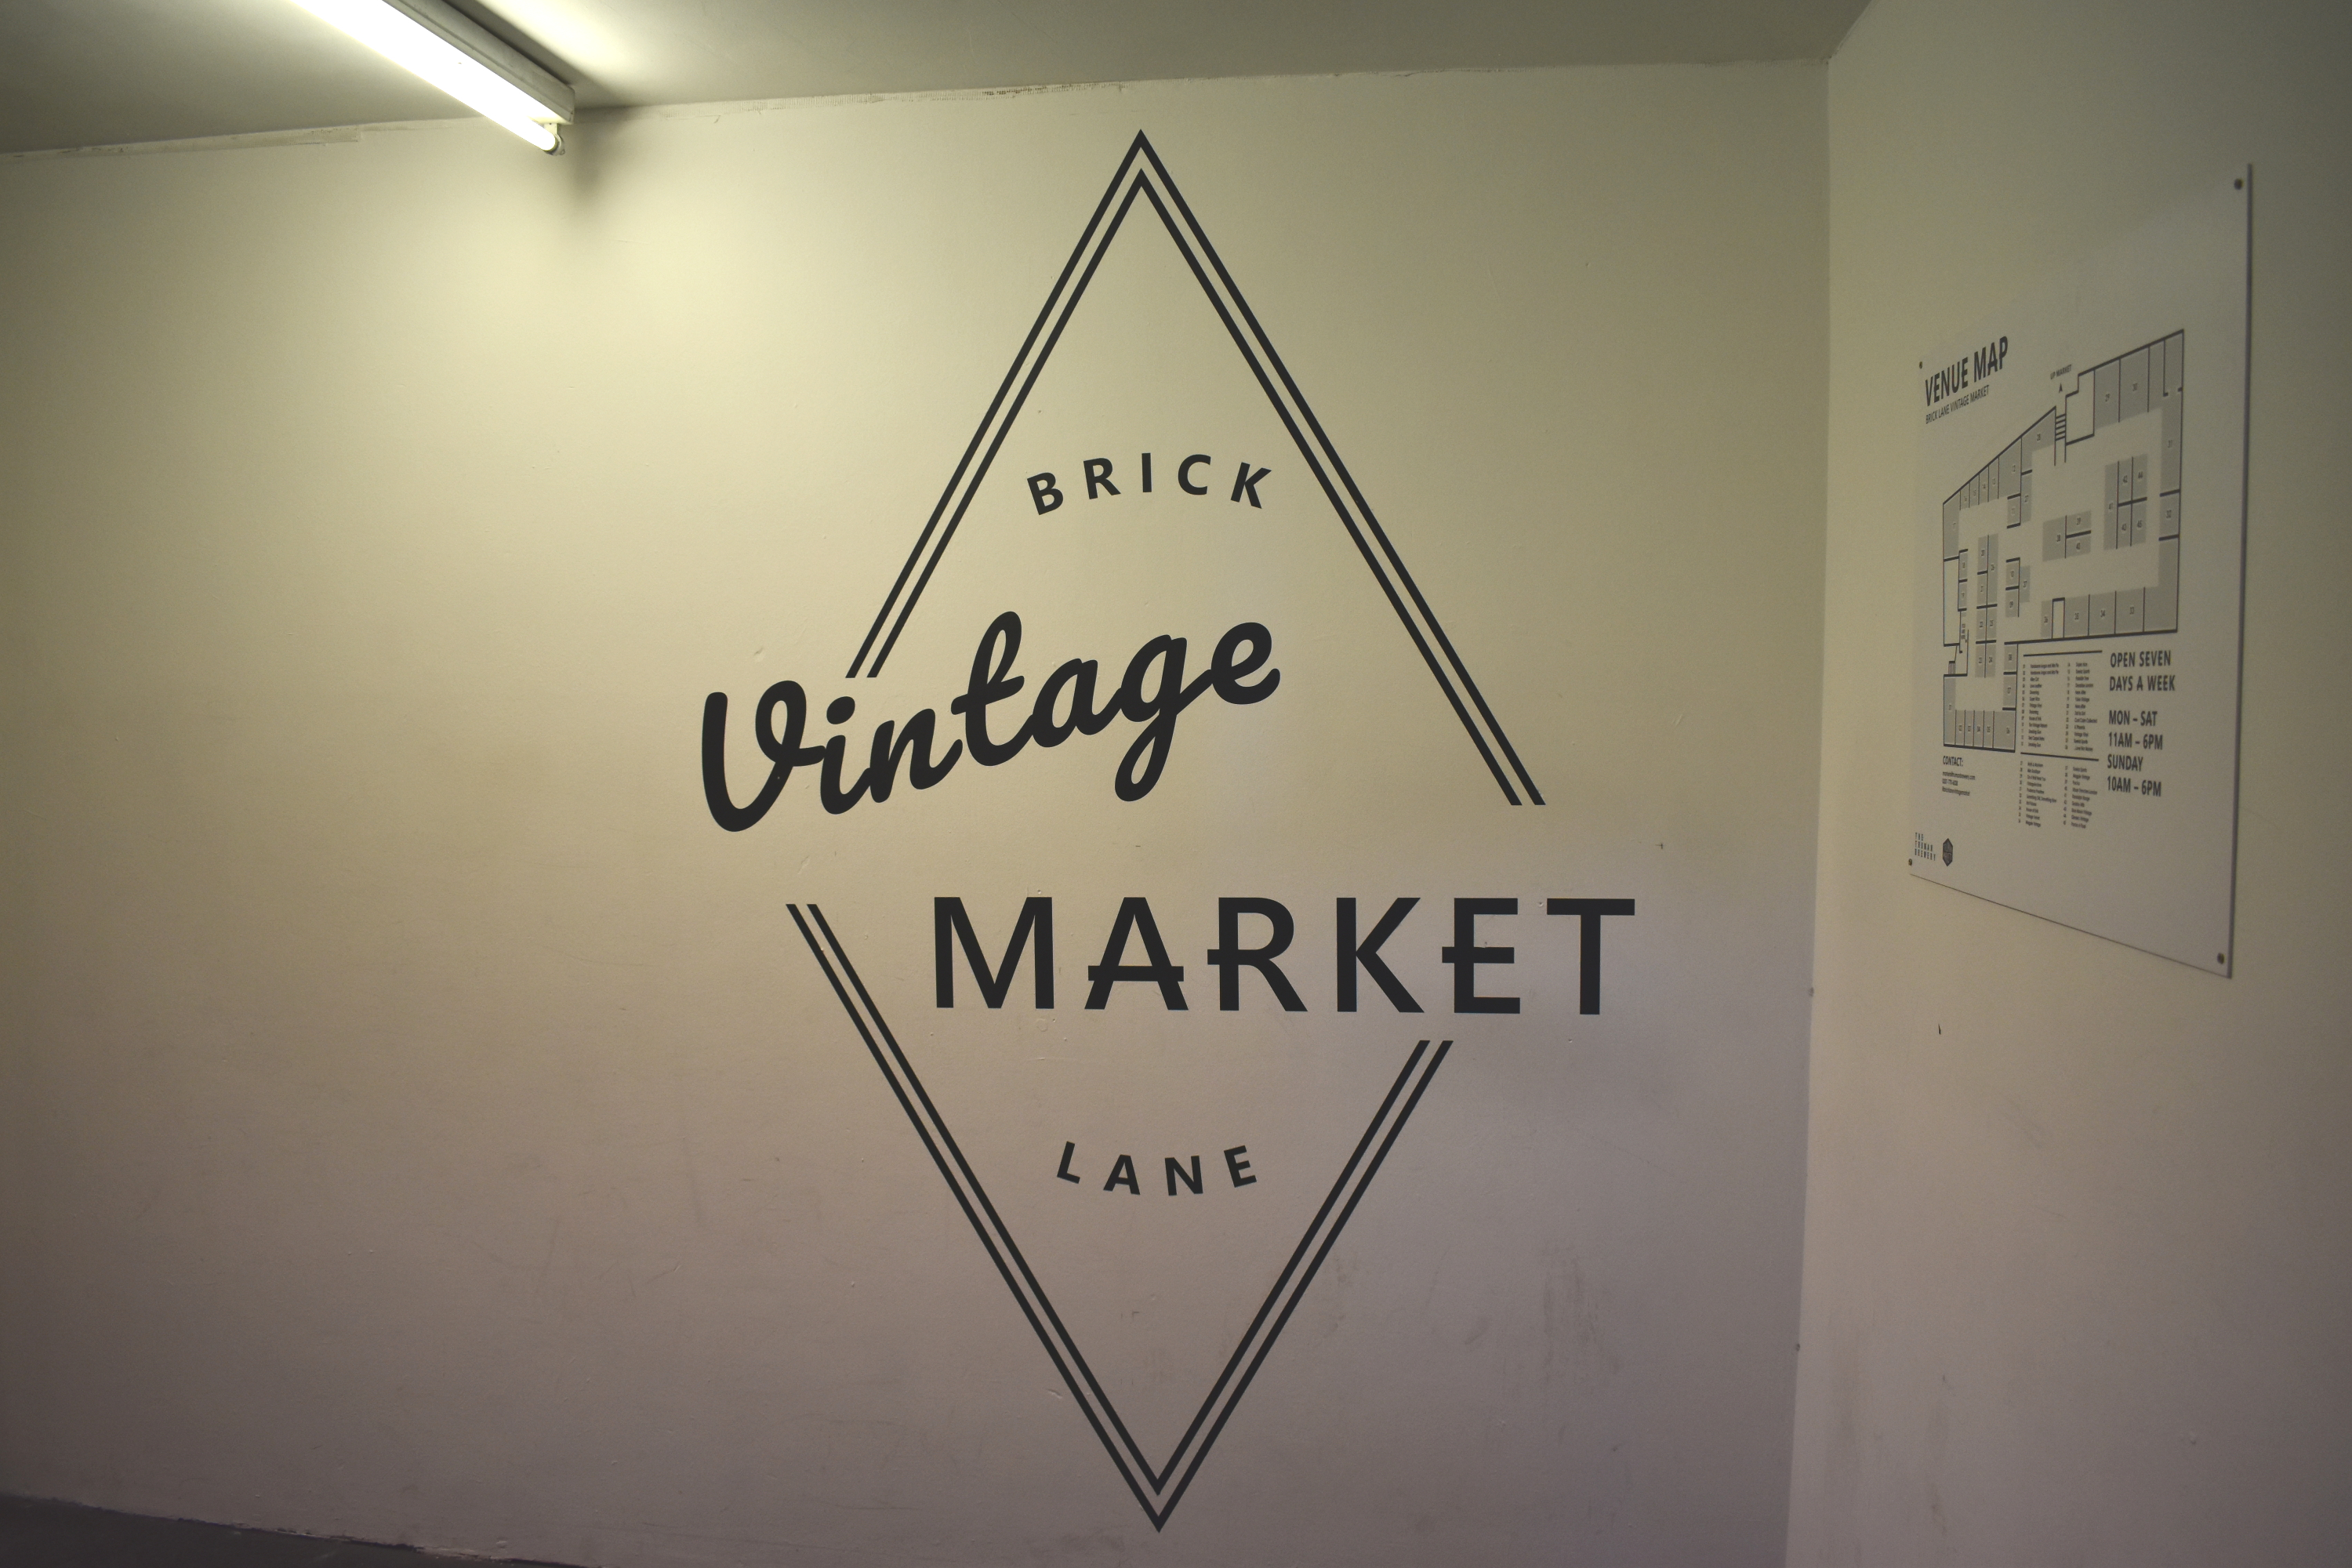 sign in building for vintage market